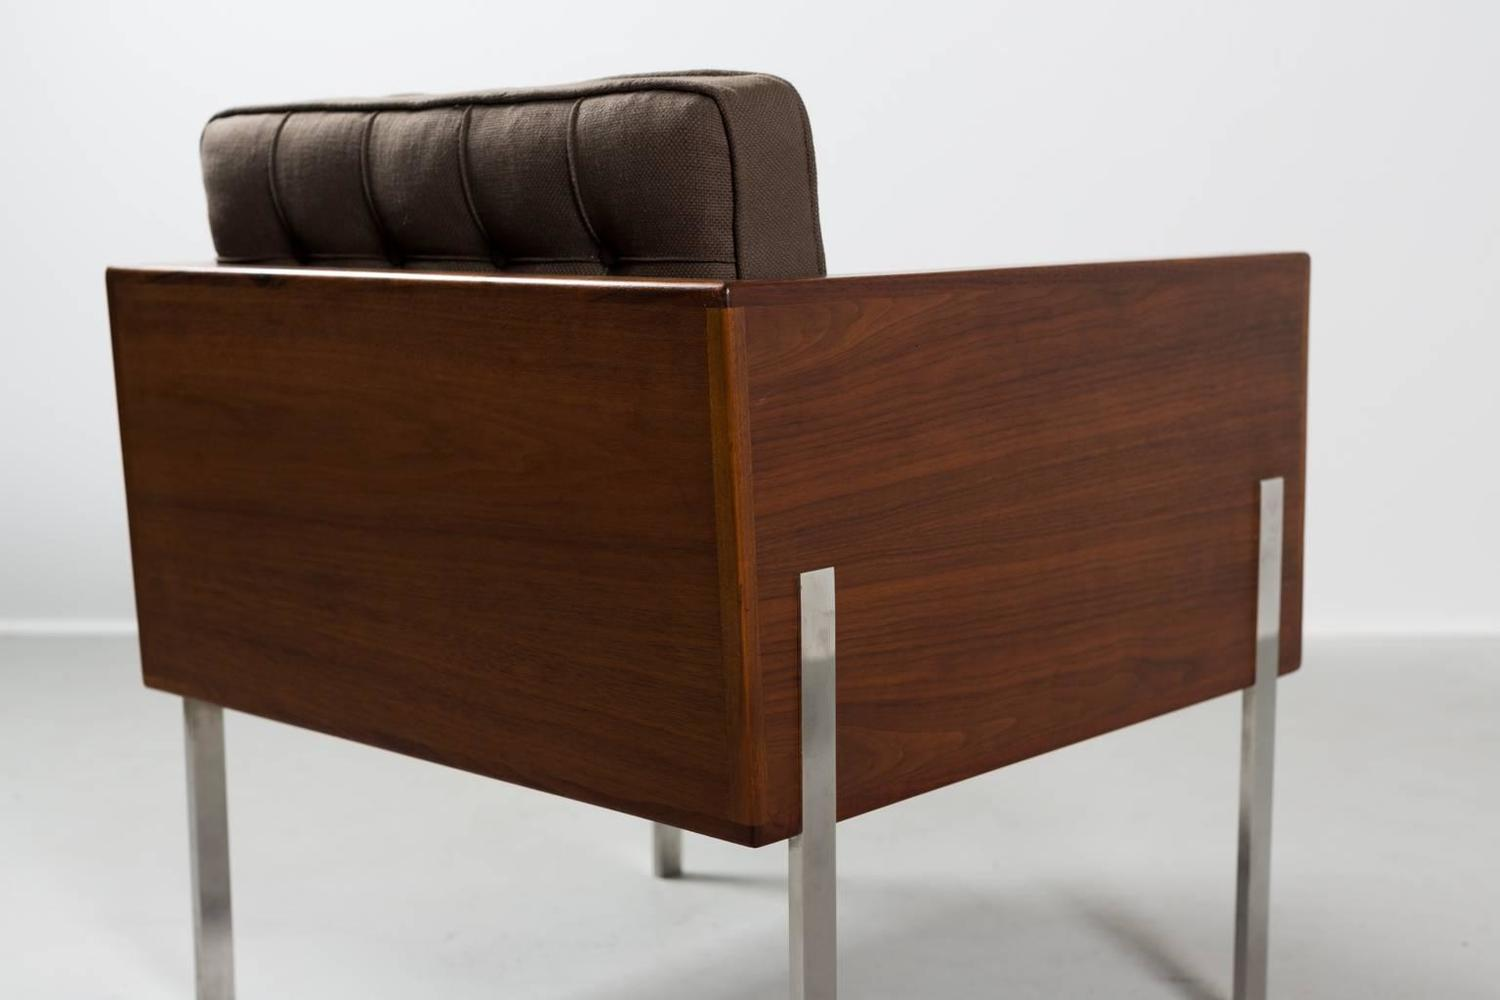 Pair of Harvey Probber Cube Chairs 1960s For Sale at 1stdibs